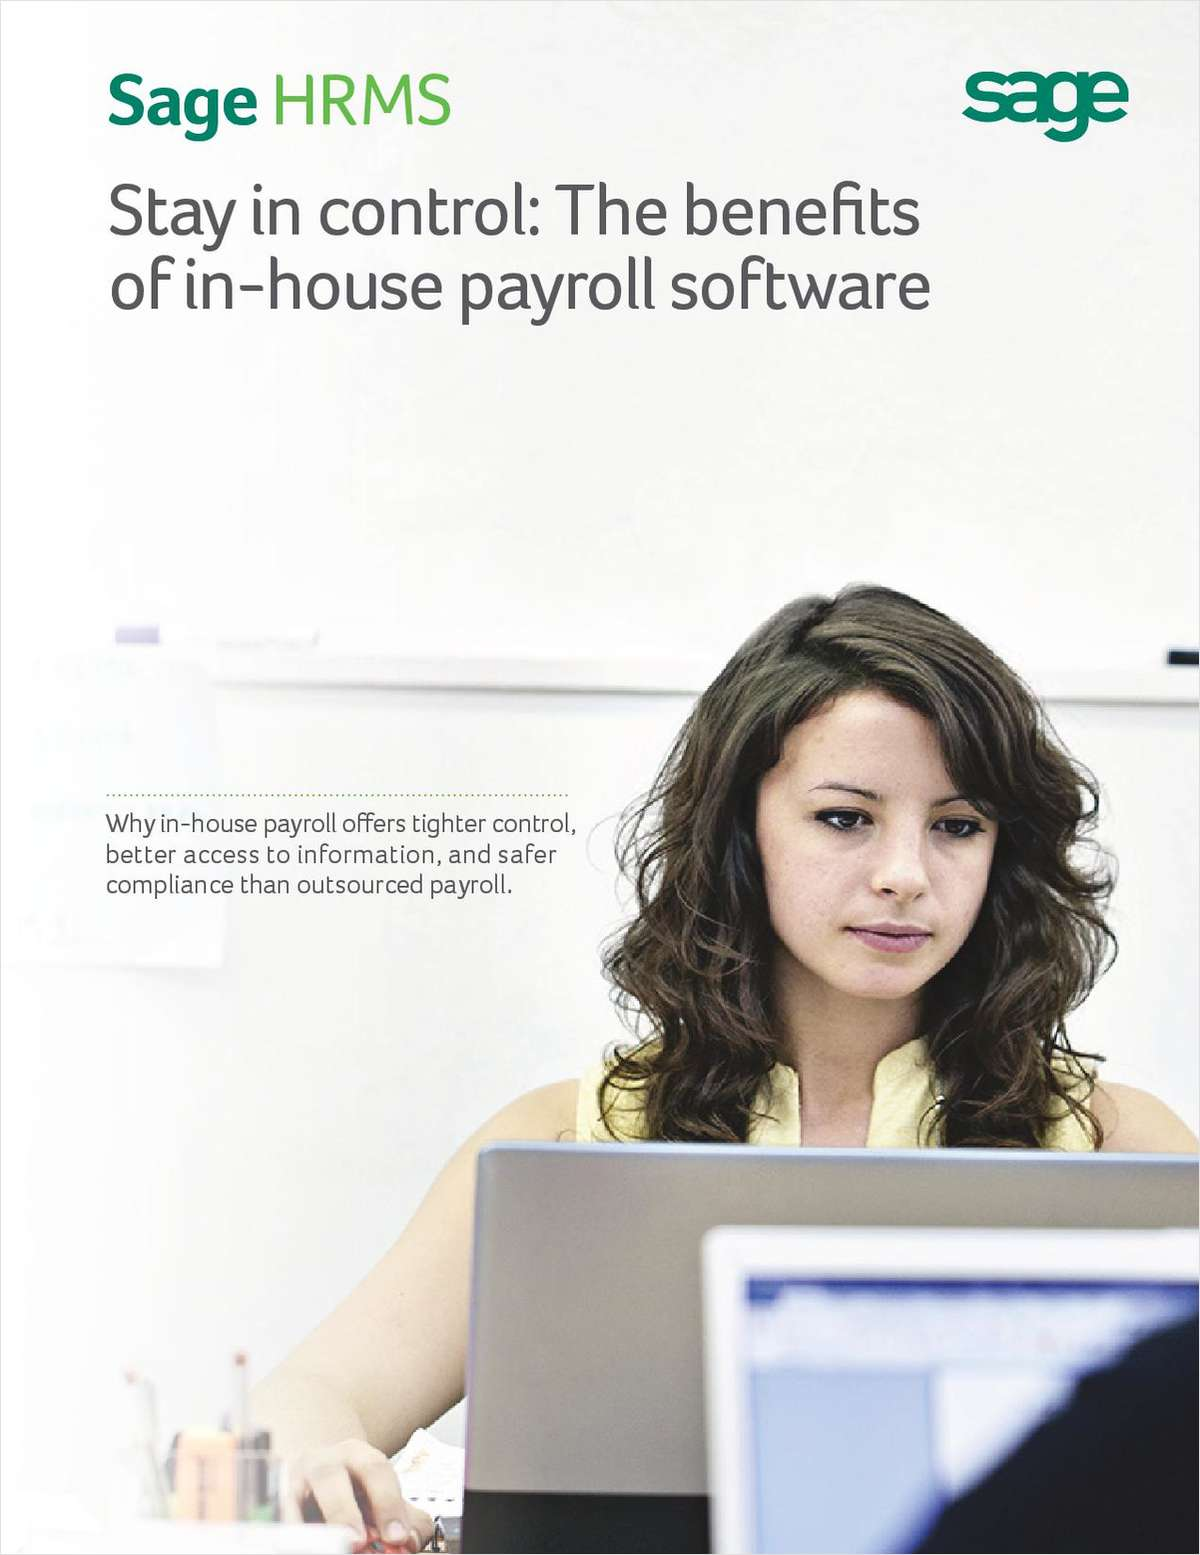 Stay In Control: The Benefits of In-House Payroll Software